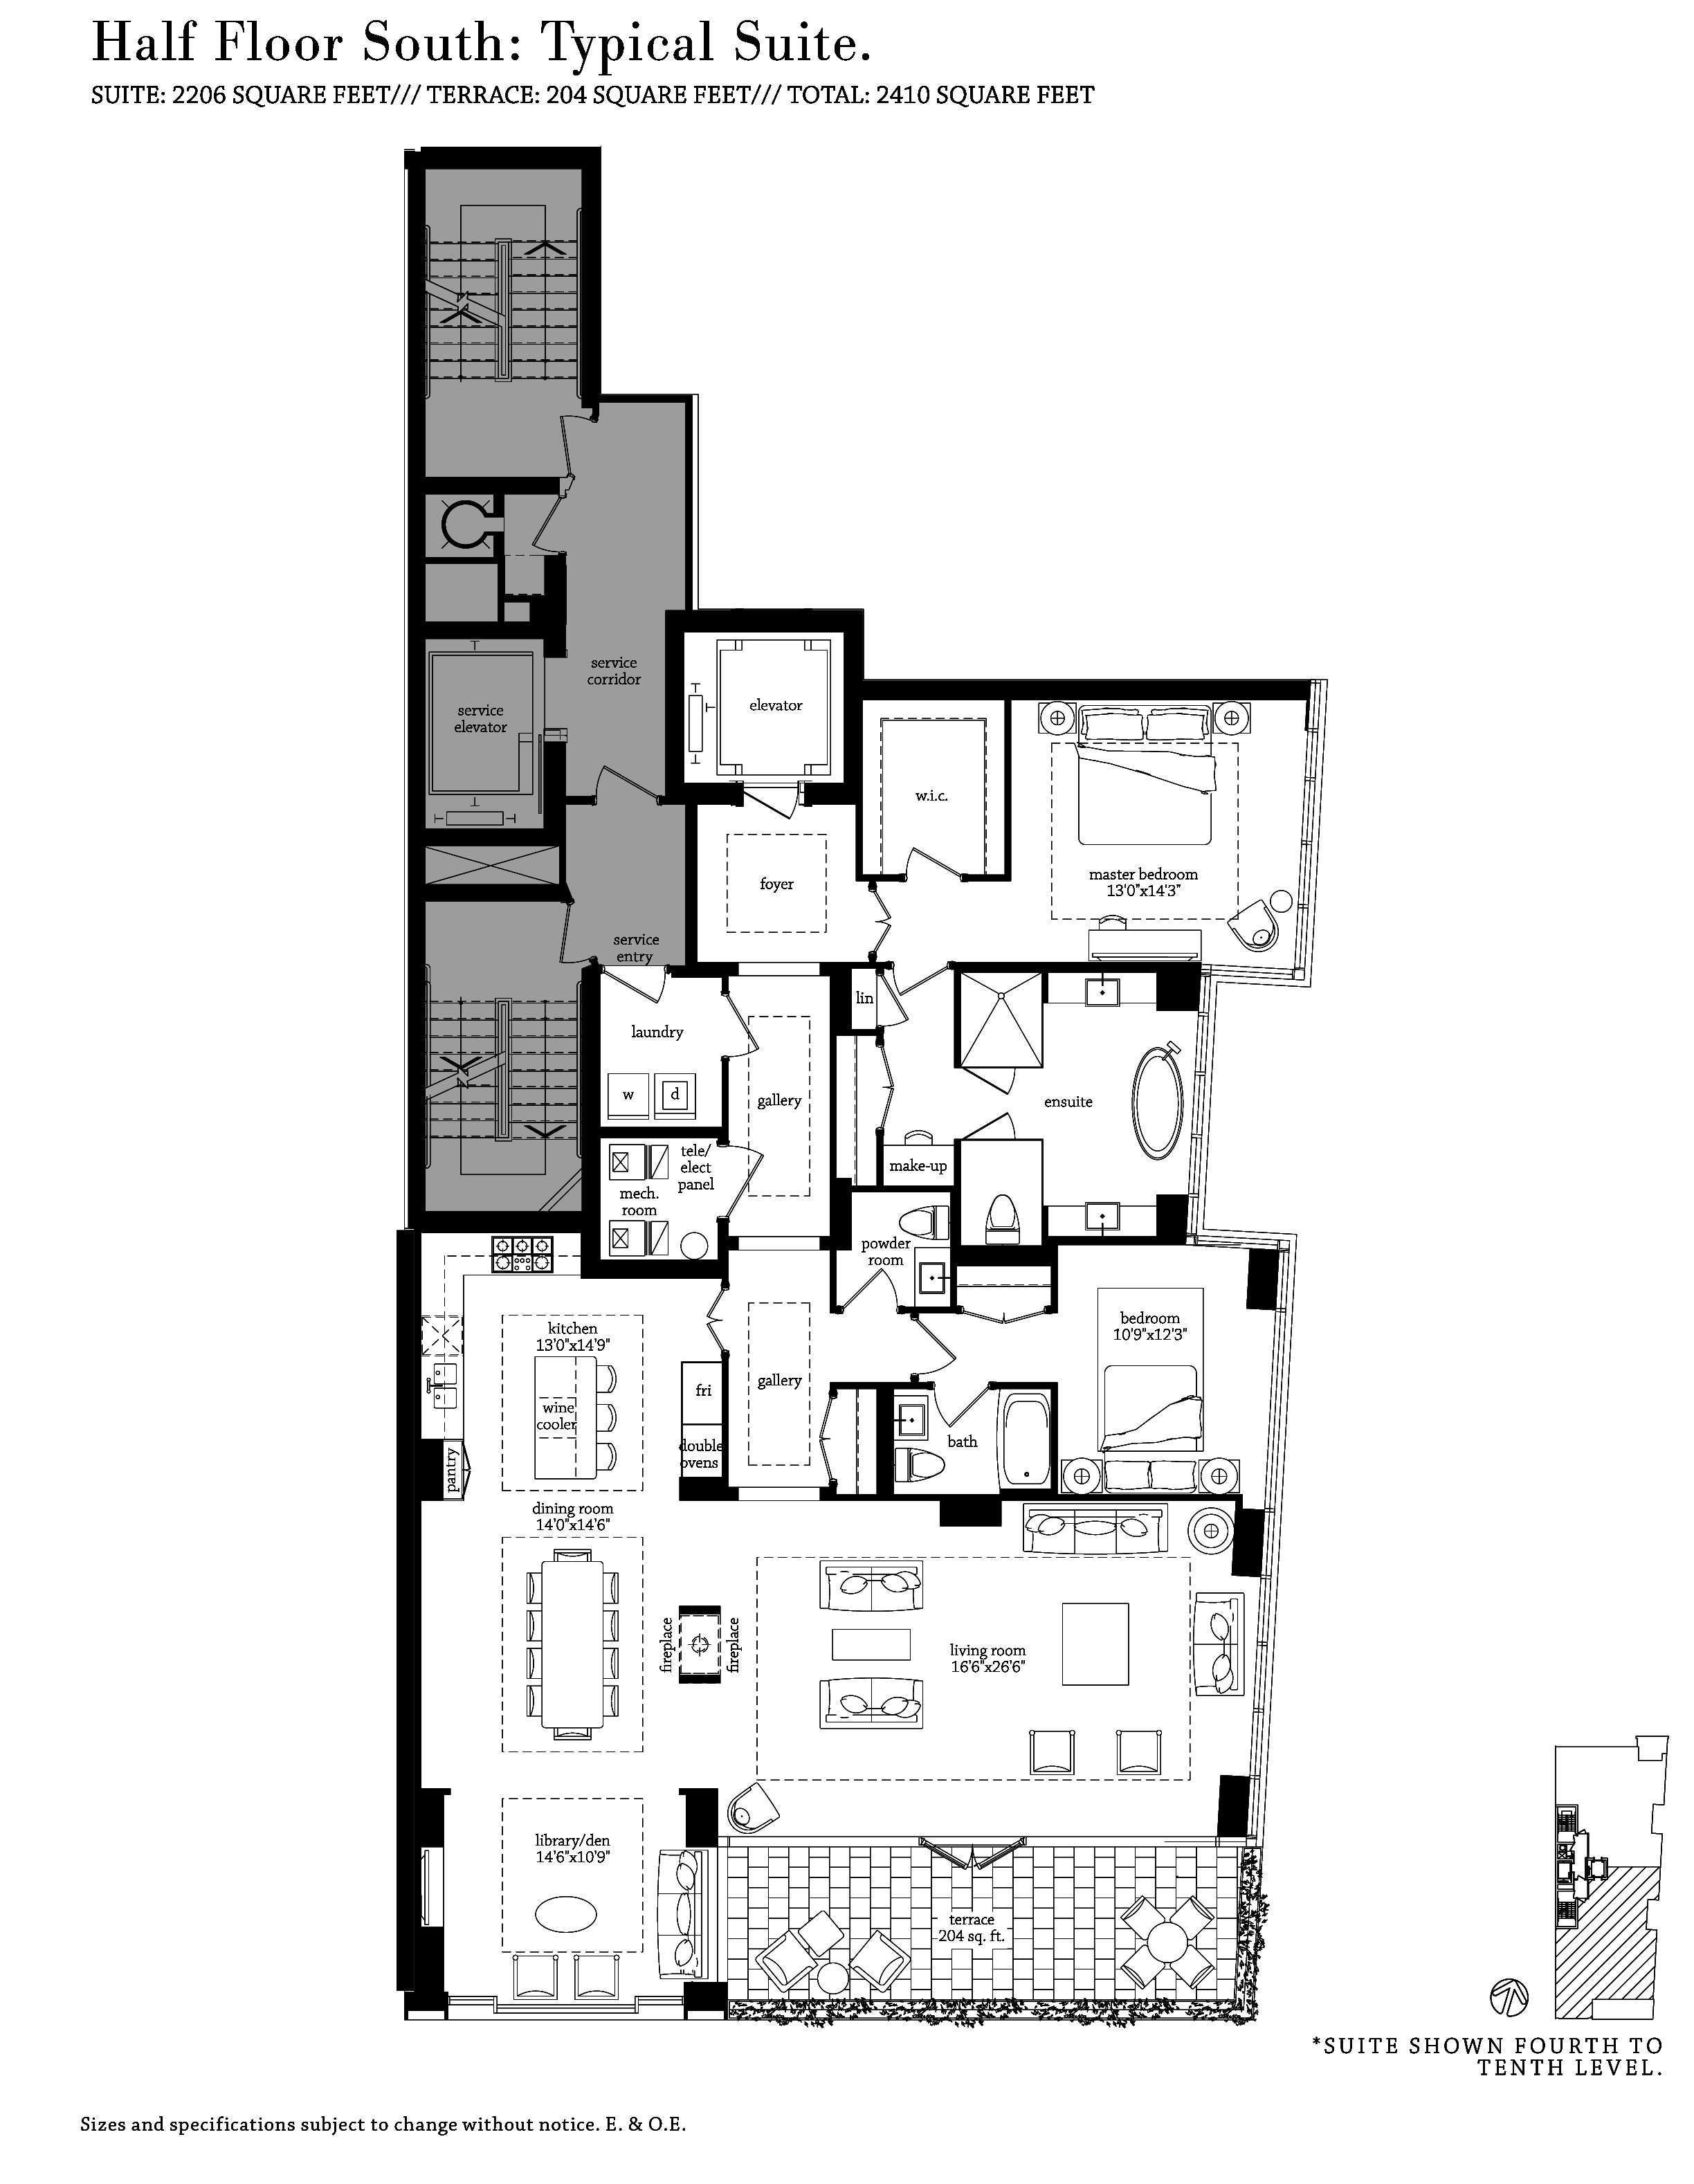 MUSEUM HOUSE - FLOORPLANS HALF FLOOR 2200 SQ FT